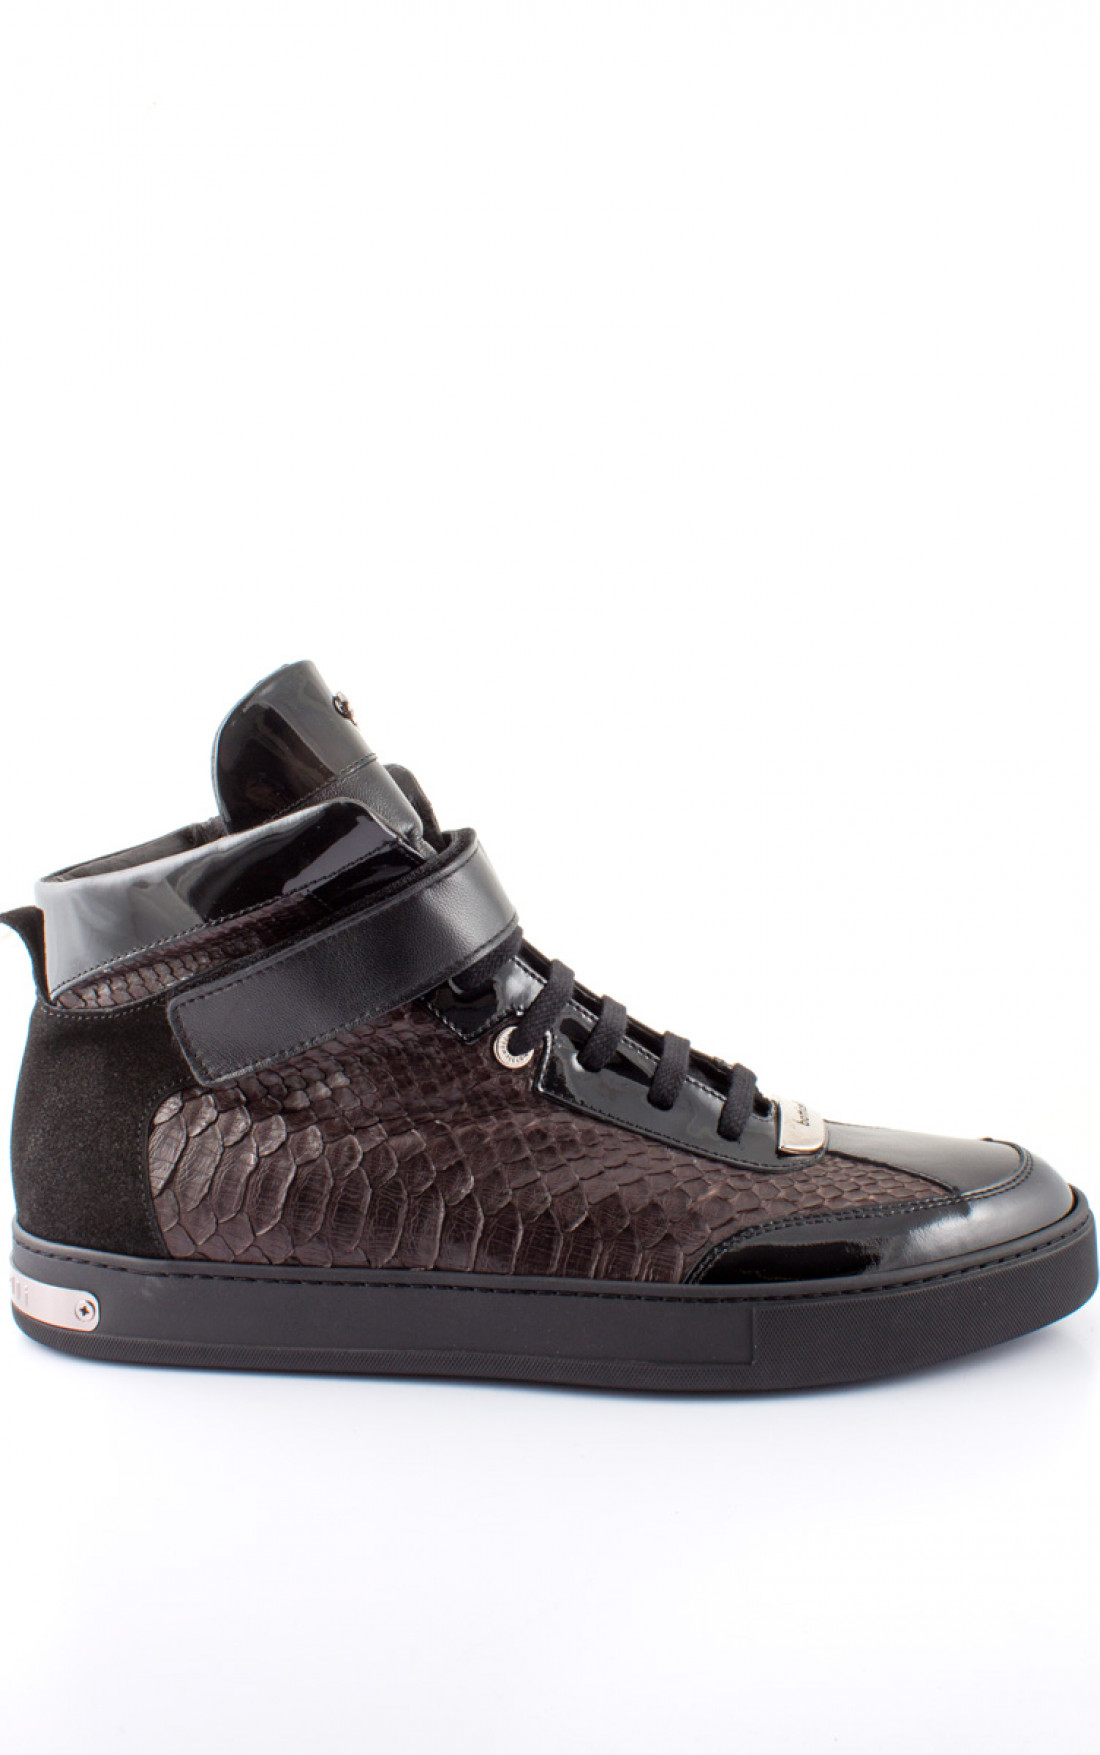 FOOTWEAR - High-tops & sneakers Botticelli Limited Sale View bJxSE8